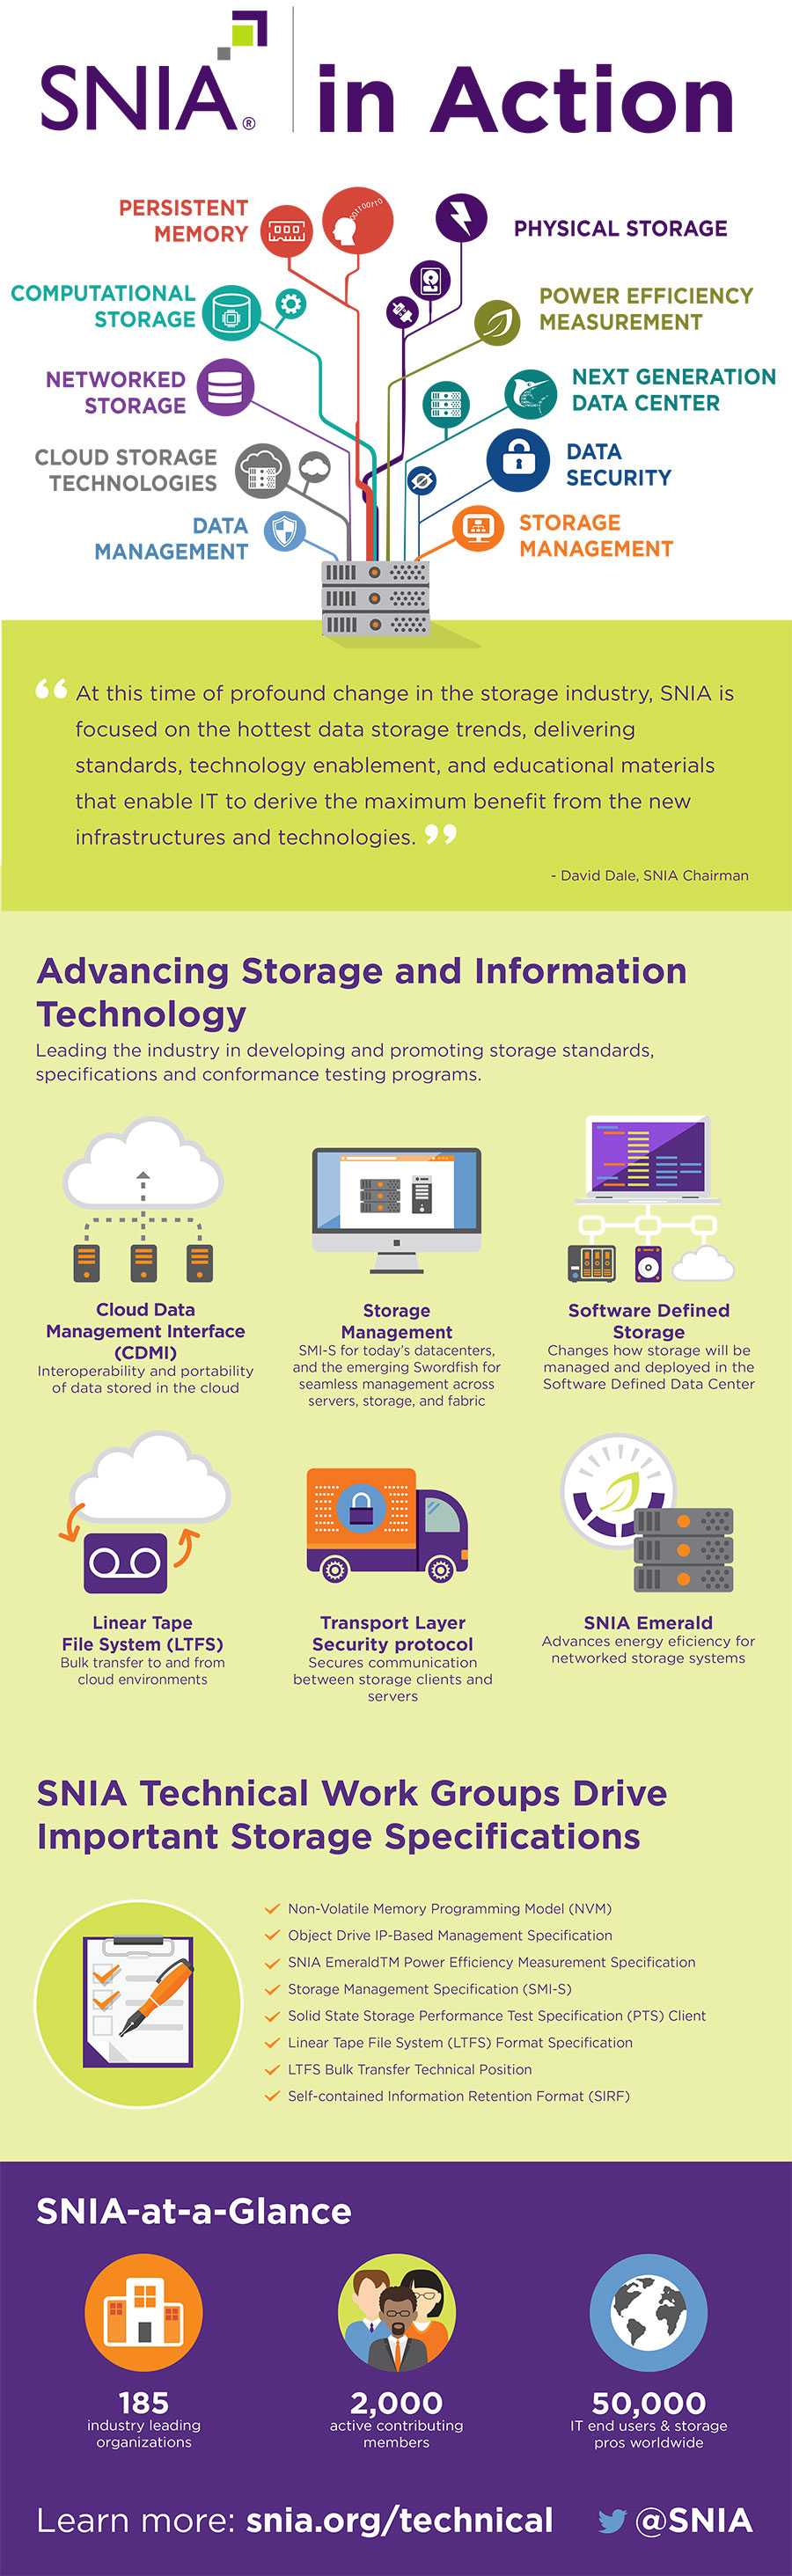 How SNIA is Advancing Storage Technologies